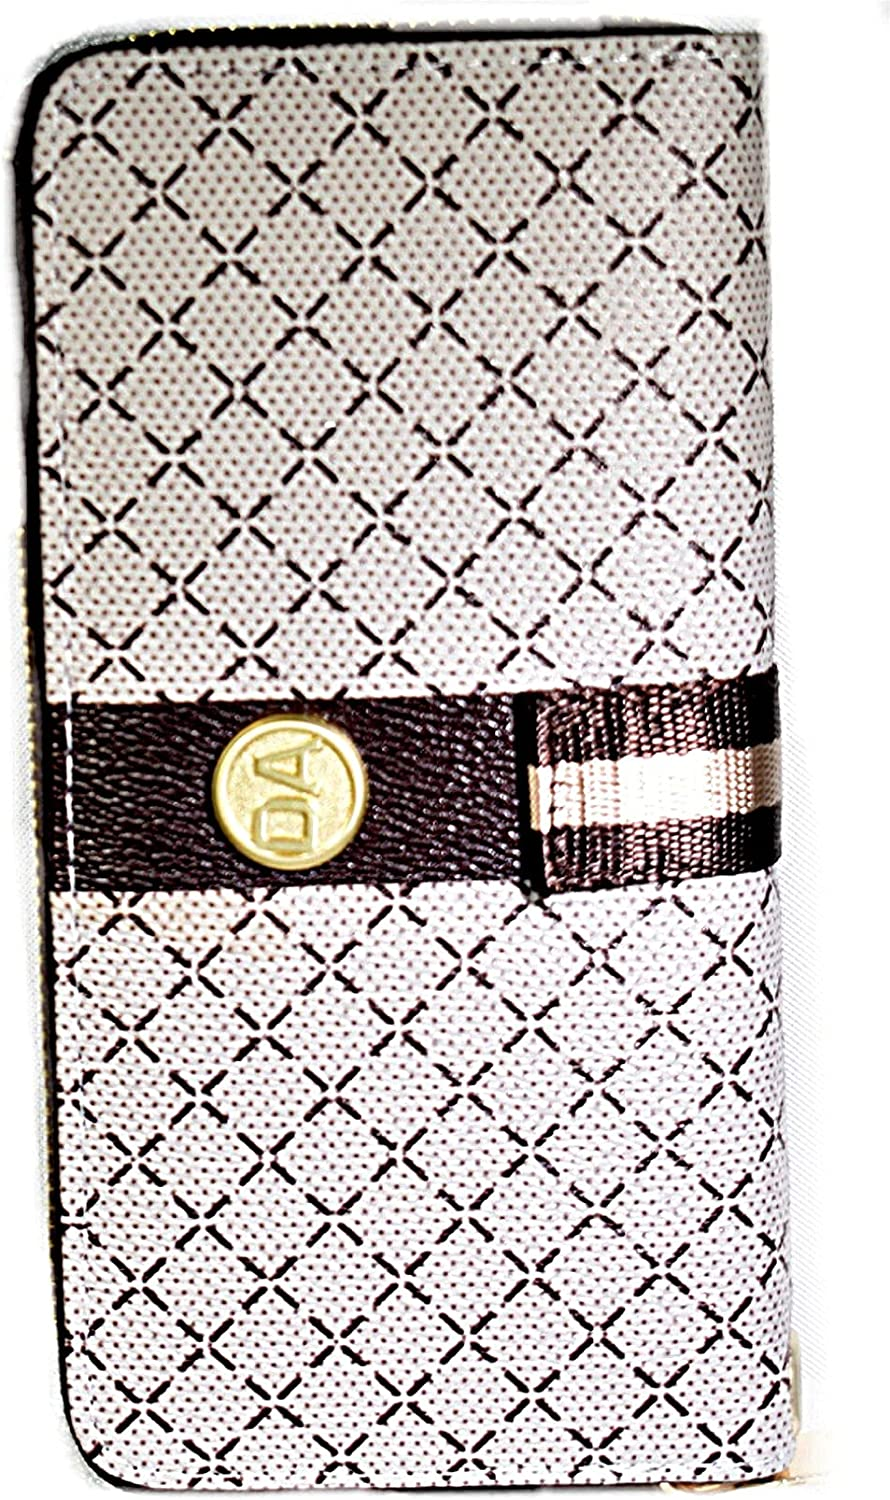 Women's Wallet PU Leather W with Designer Special price for Popular brand a limited time